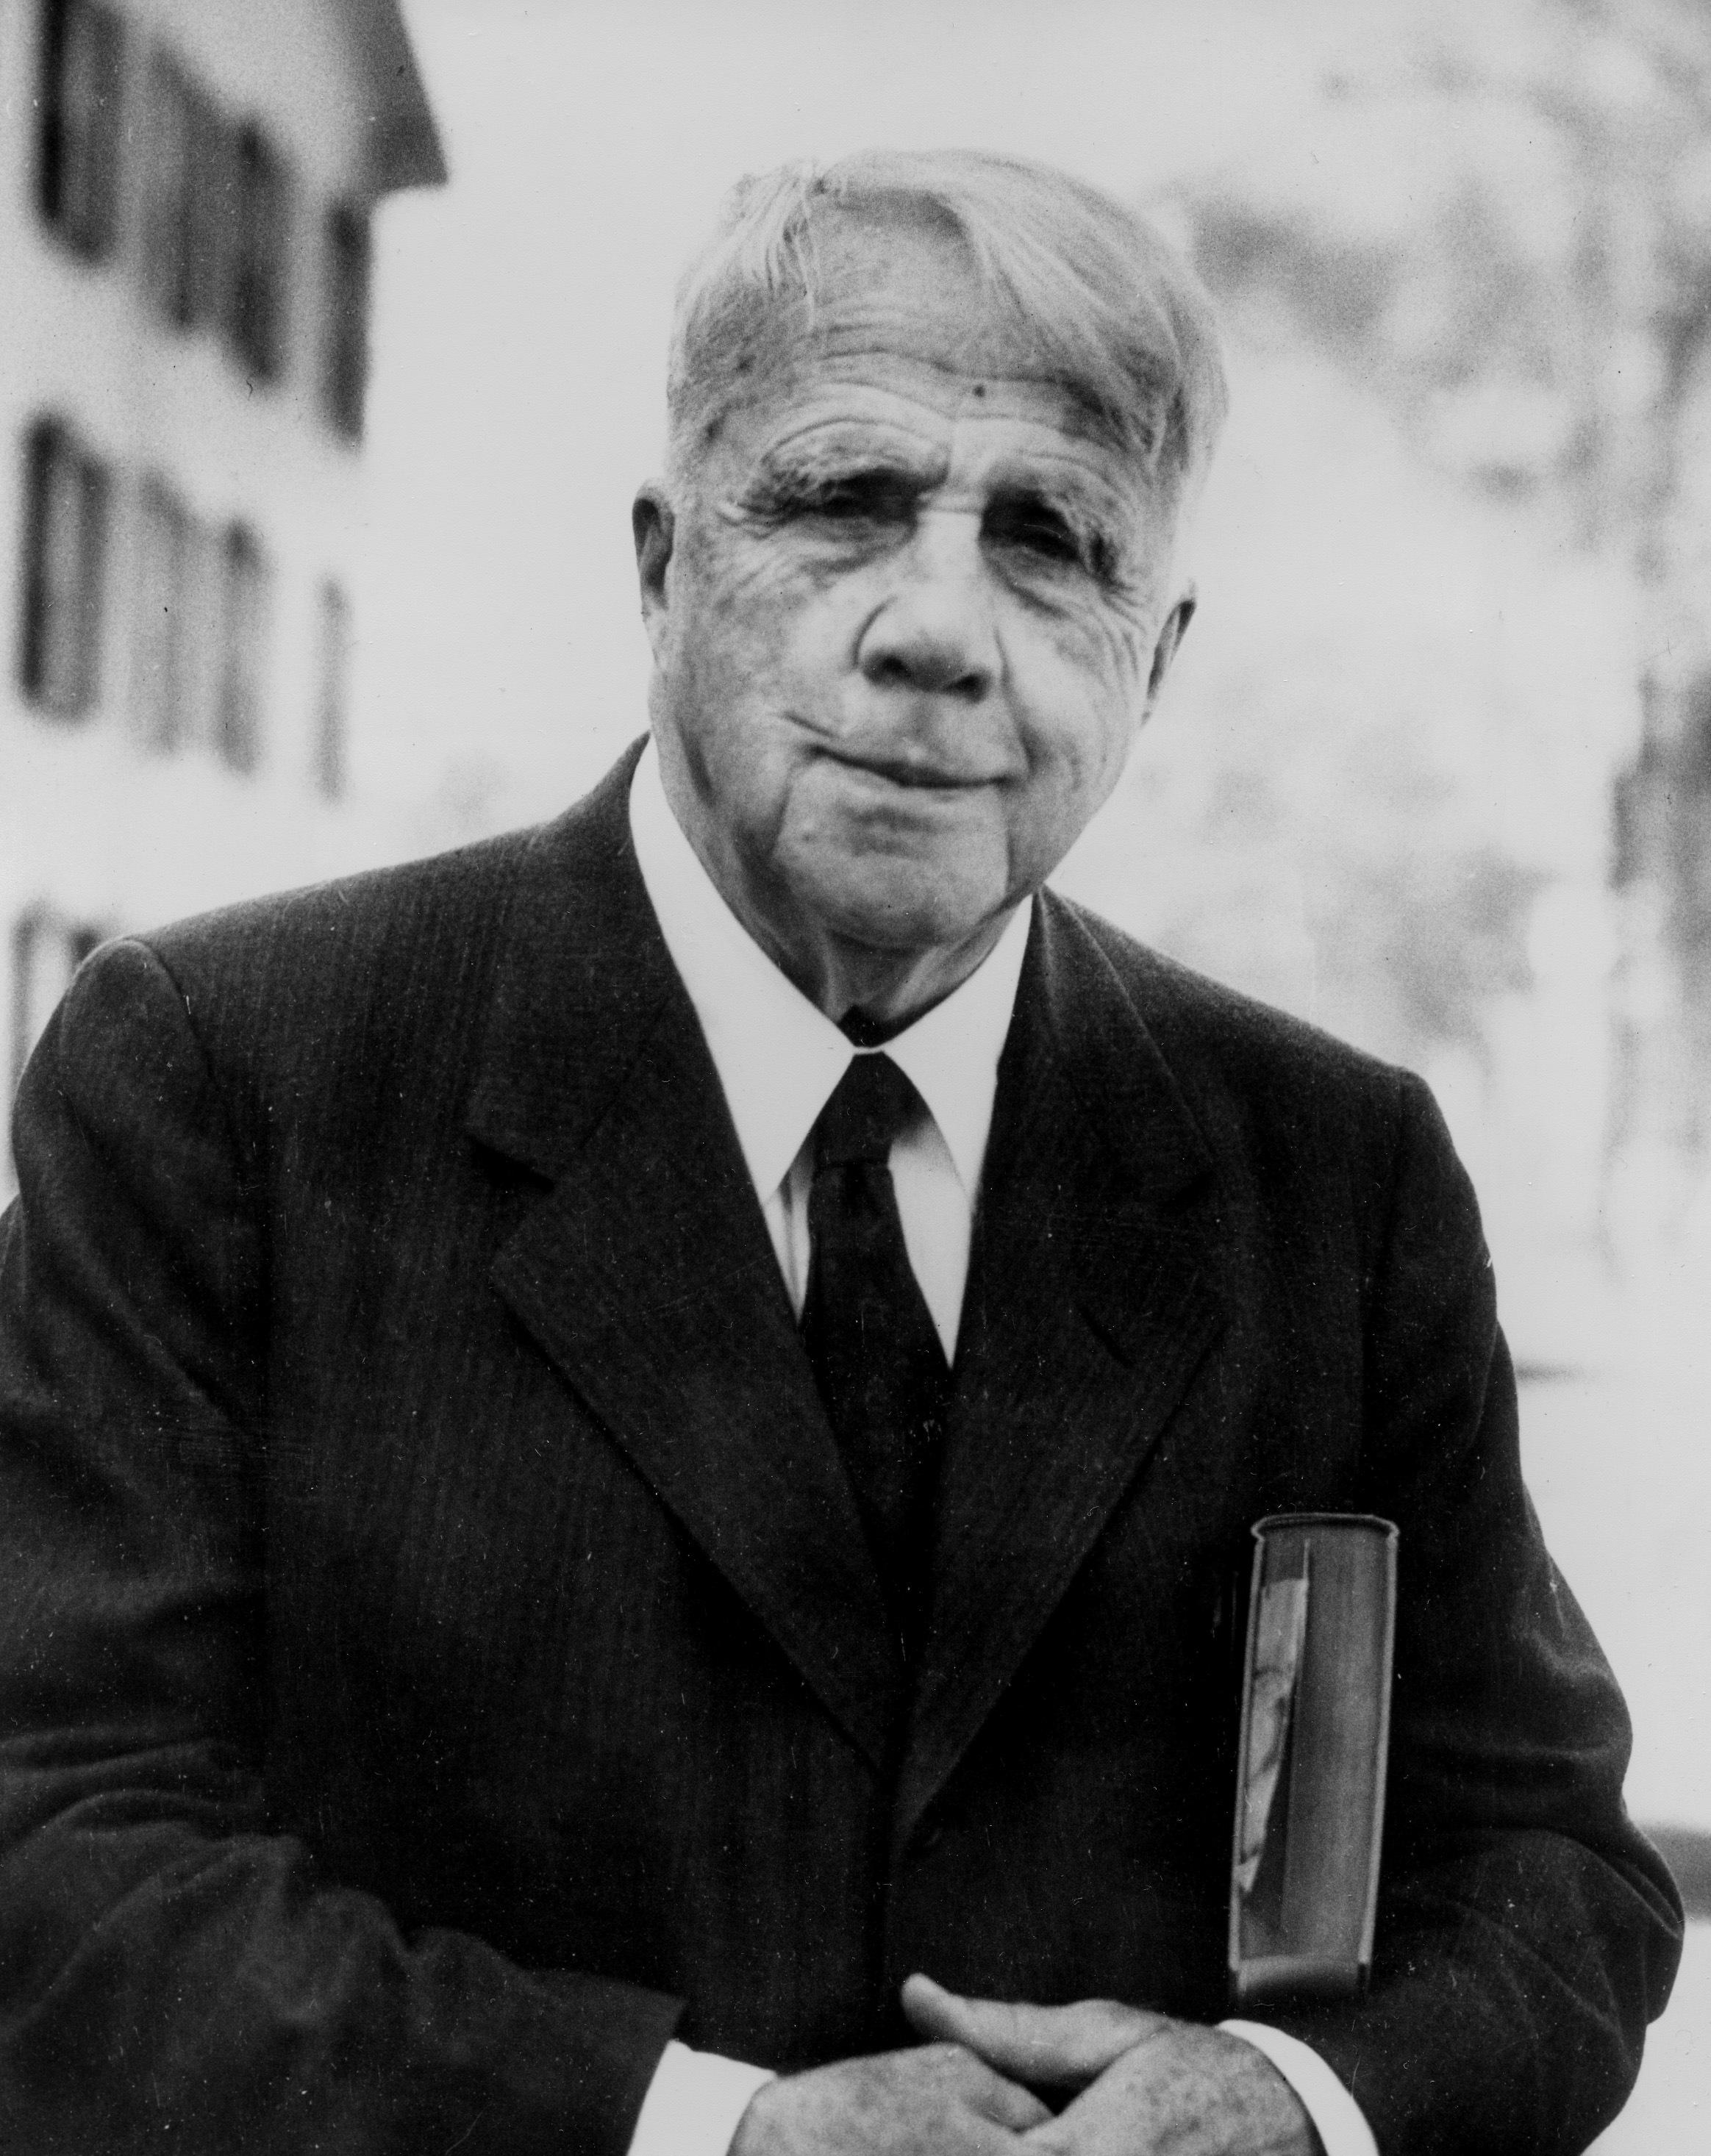 robert frost the new england poet Robert lee frost (march 26, 1874 – january 29, 1963) was an american poet his work was initially published in england before it was published in america known for his realistic depictions of rural life and his command of american colloquial speech, frost frequently wrote about settings from rural life in new england in the early twentieth century, using them to examine complex social and .